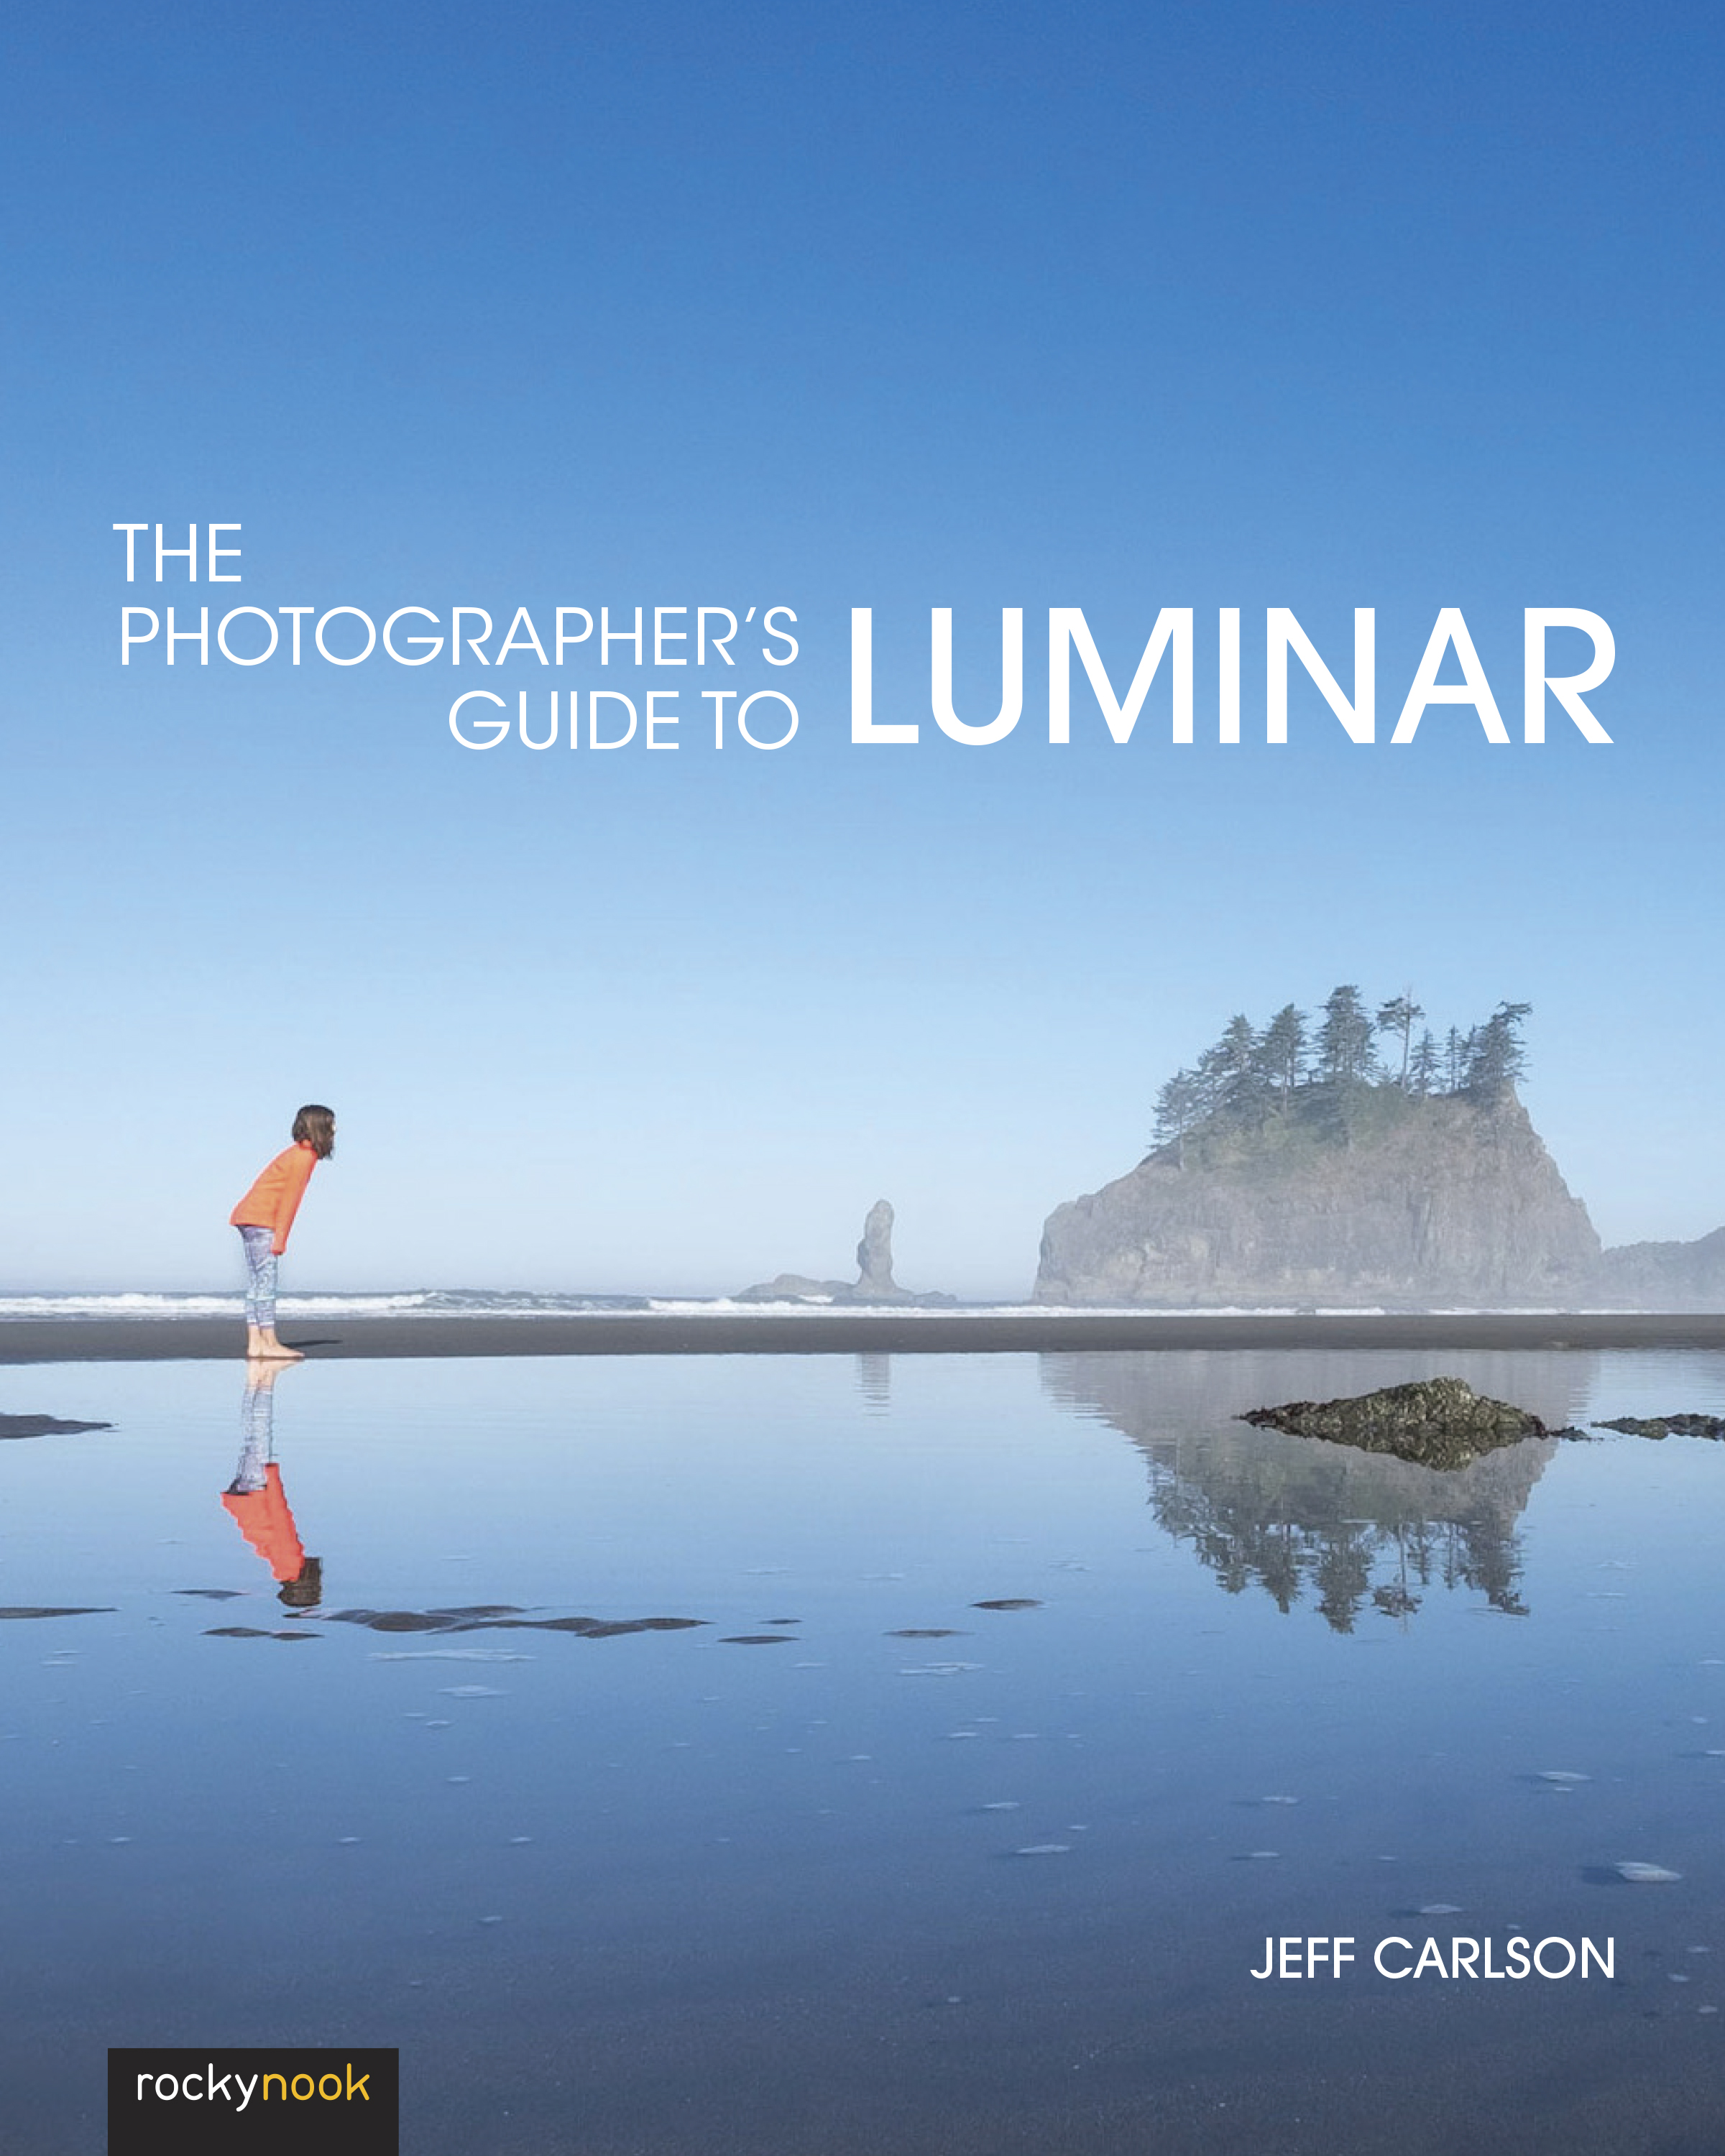 The Photographer's Guide to Luminar by Jeff Carlson – Rocky Nook